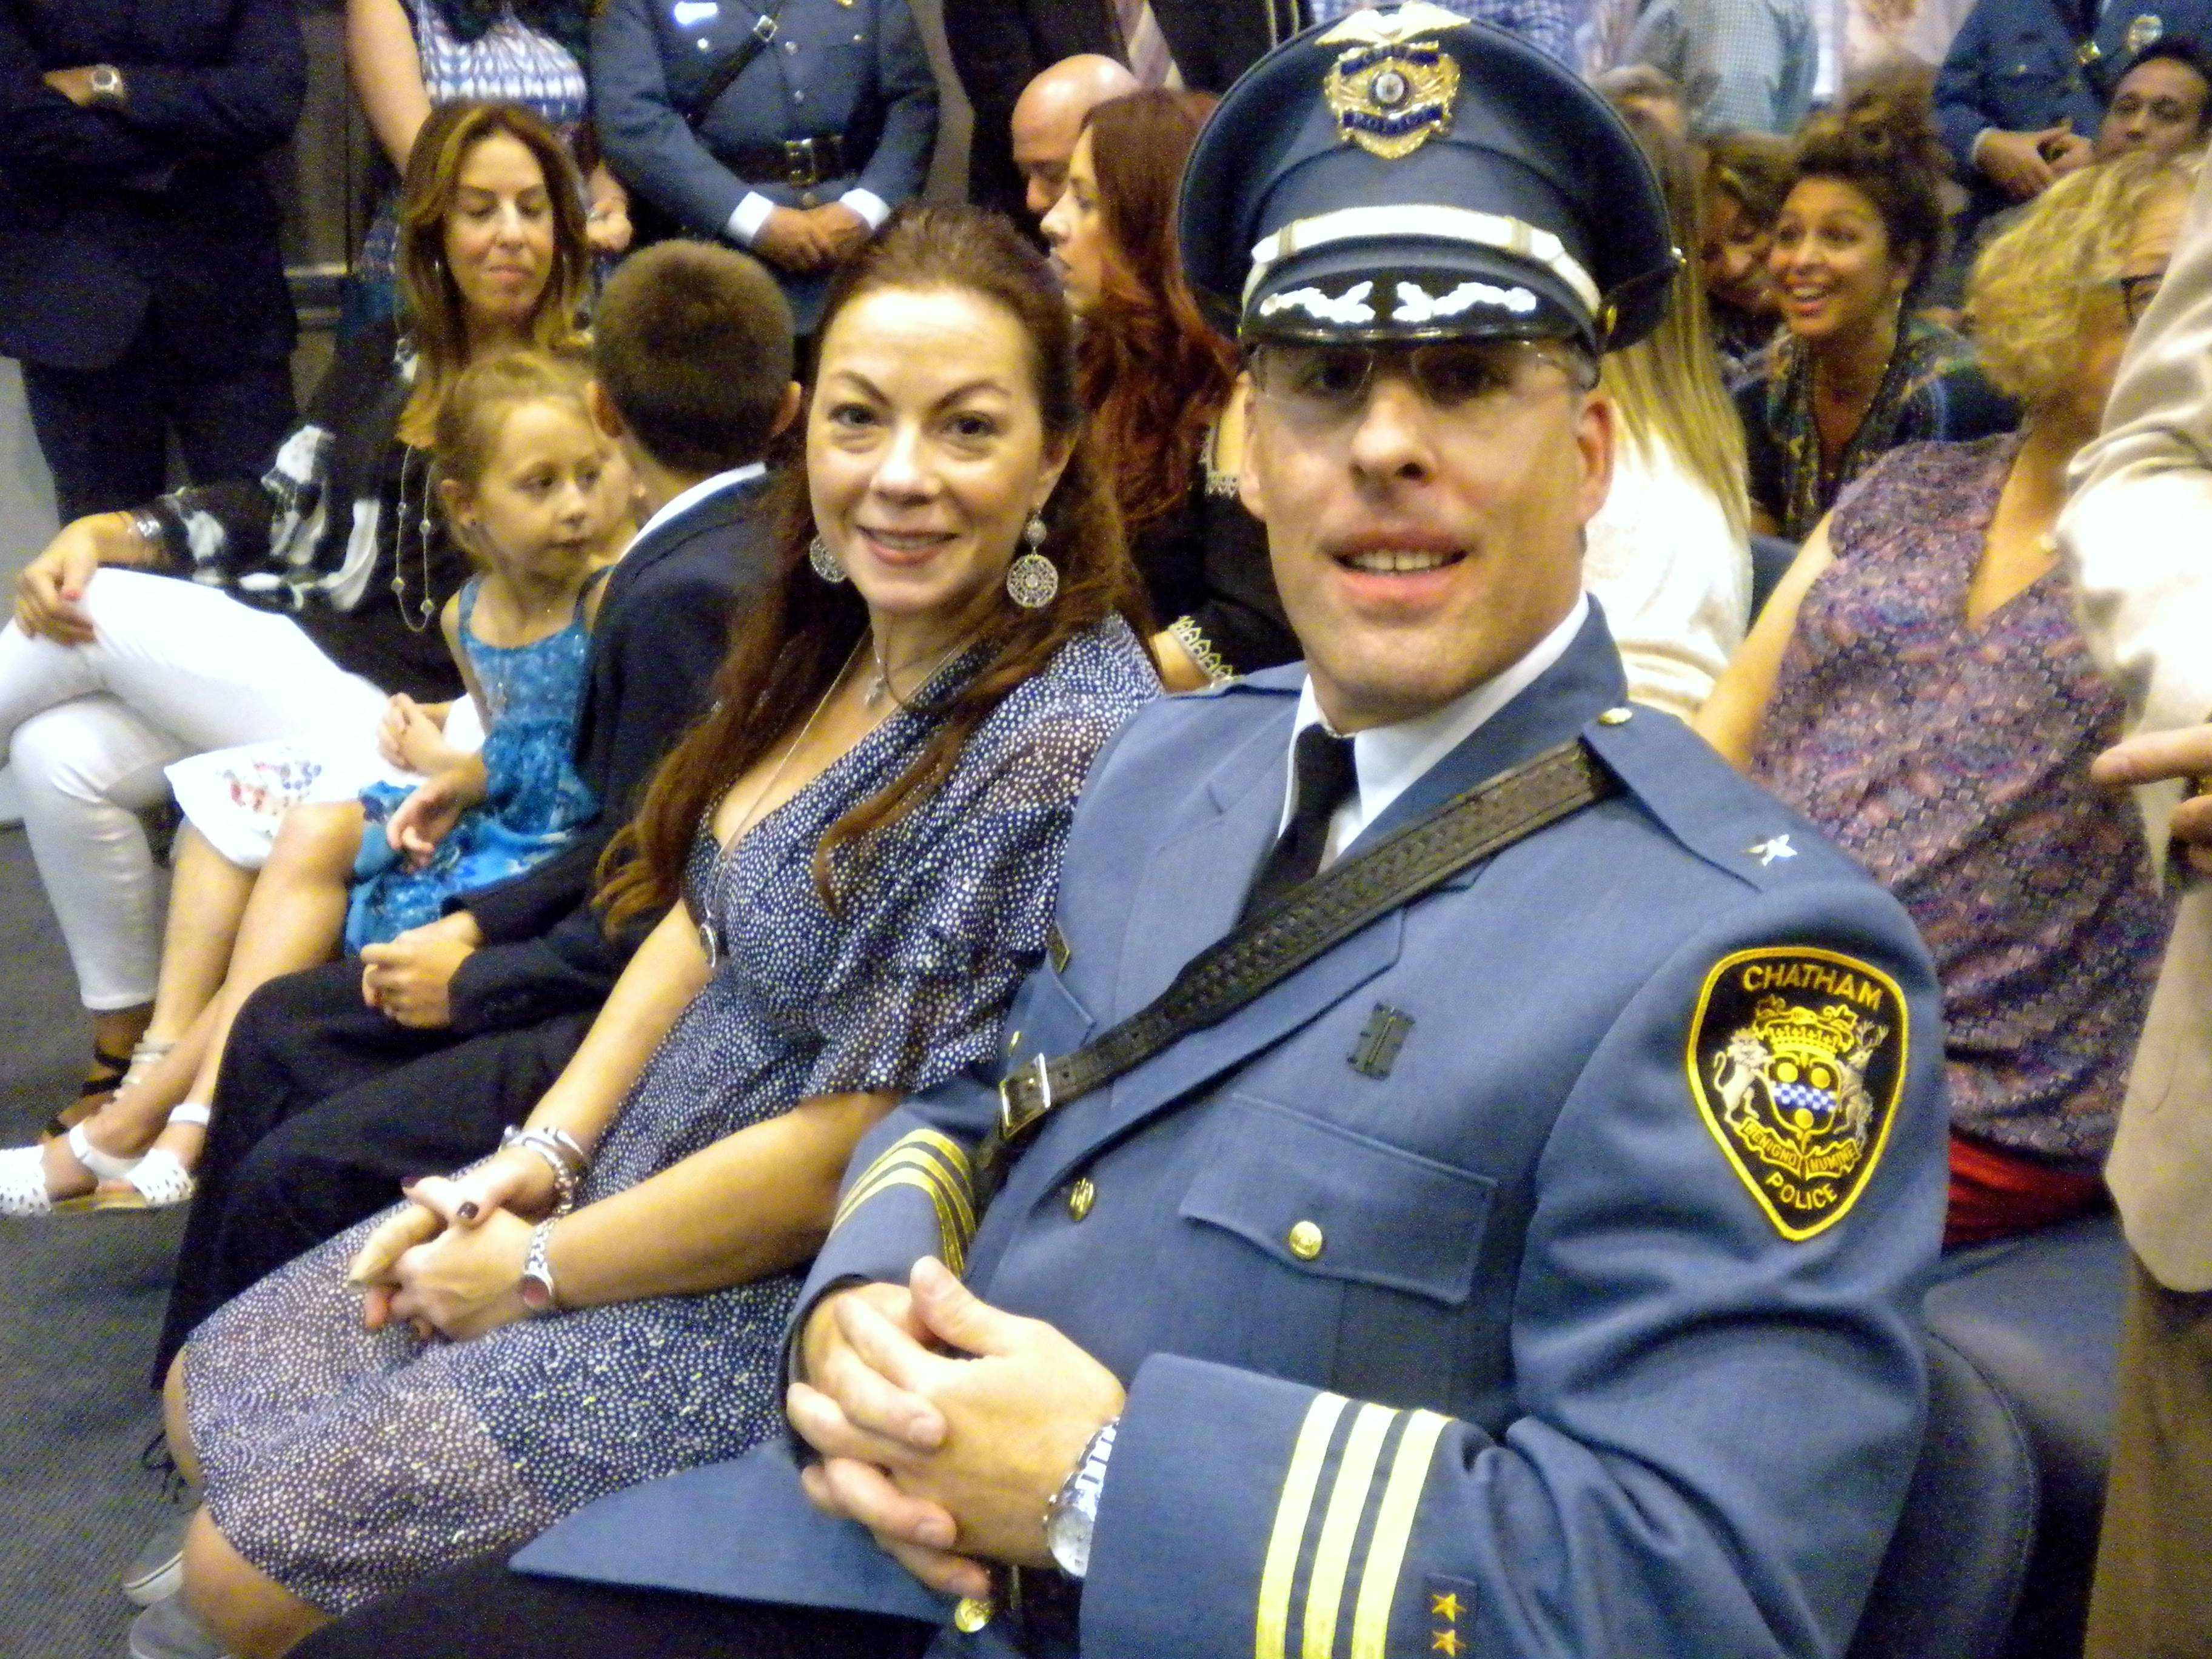 Brian Gibbons Sworn in as 9th Chatham Borough Police Chief; Overflow Crowd Shows Approval with Standing Ovation